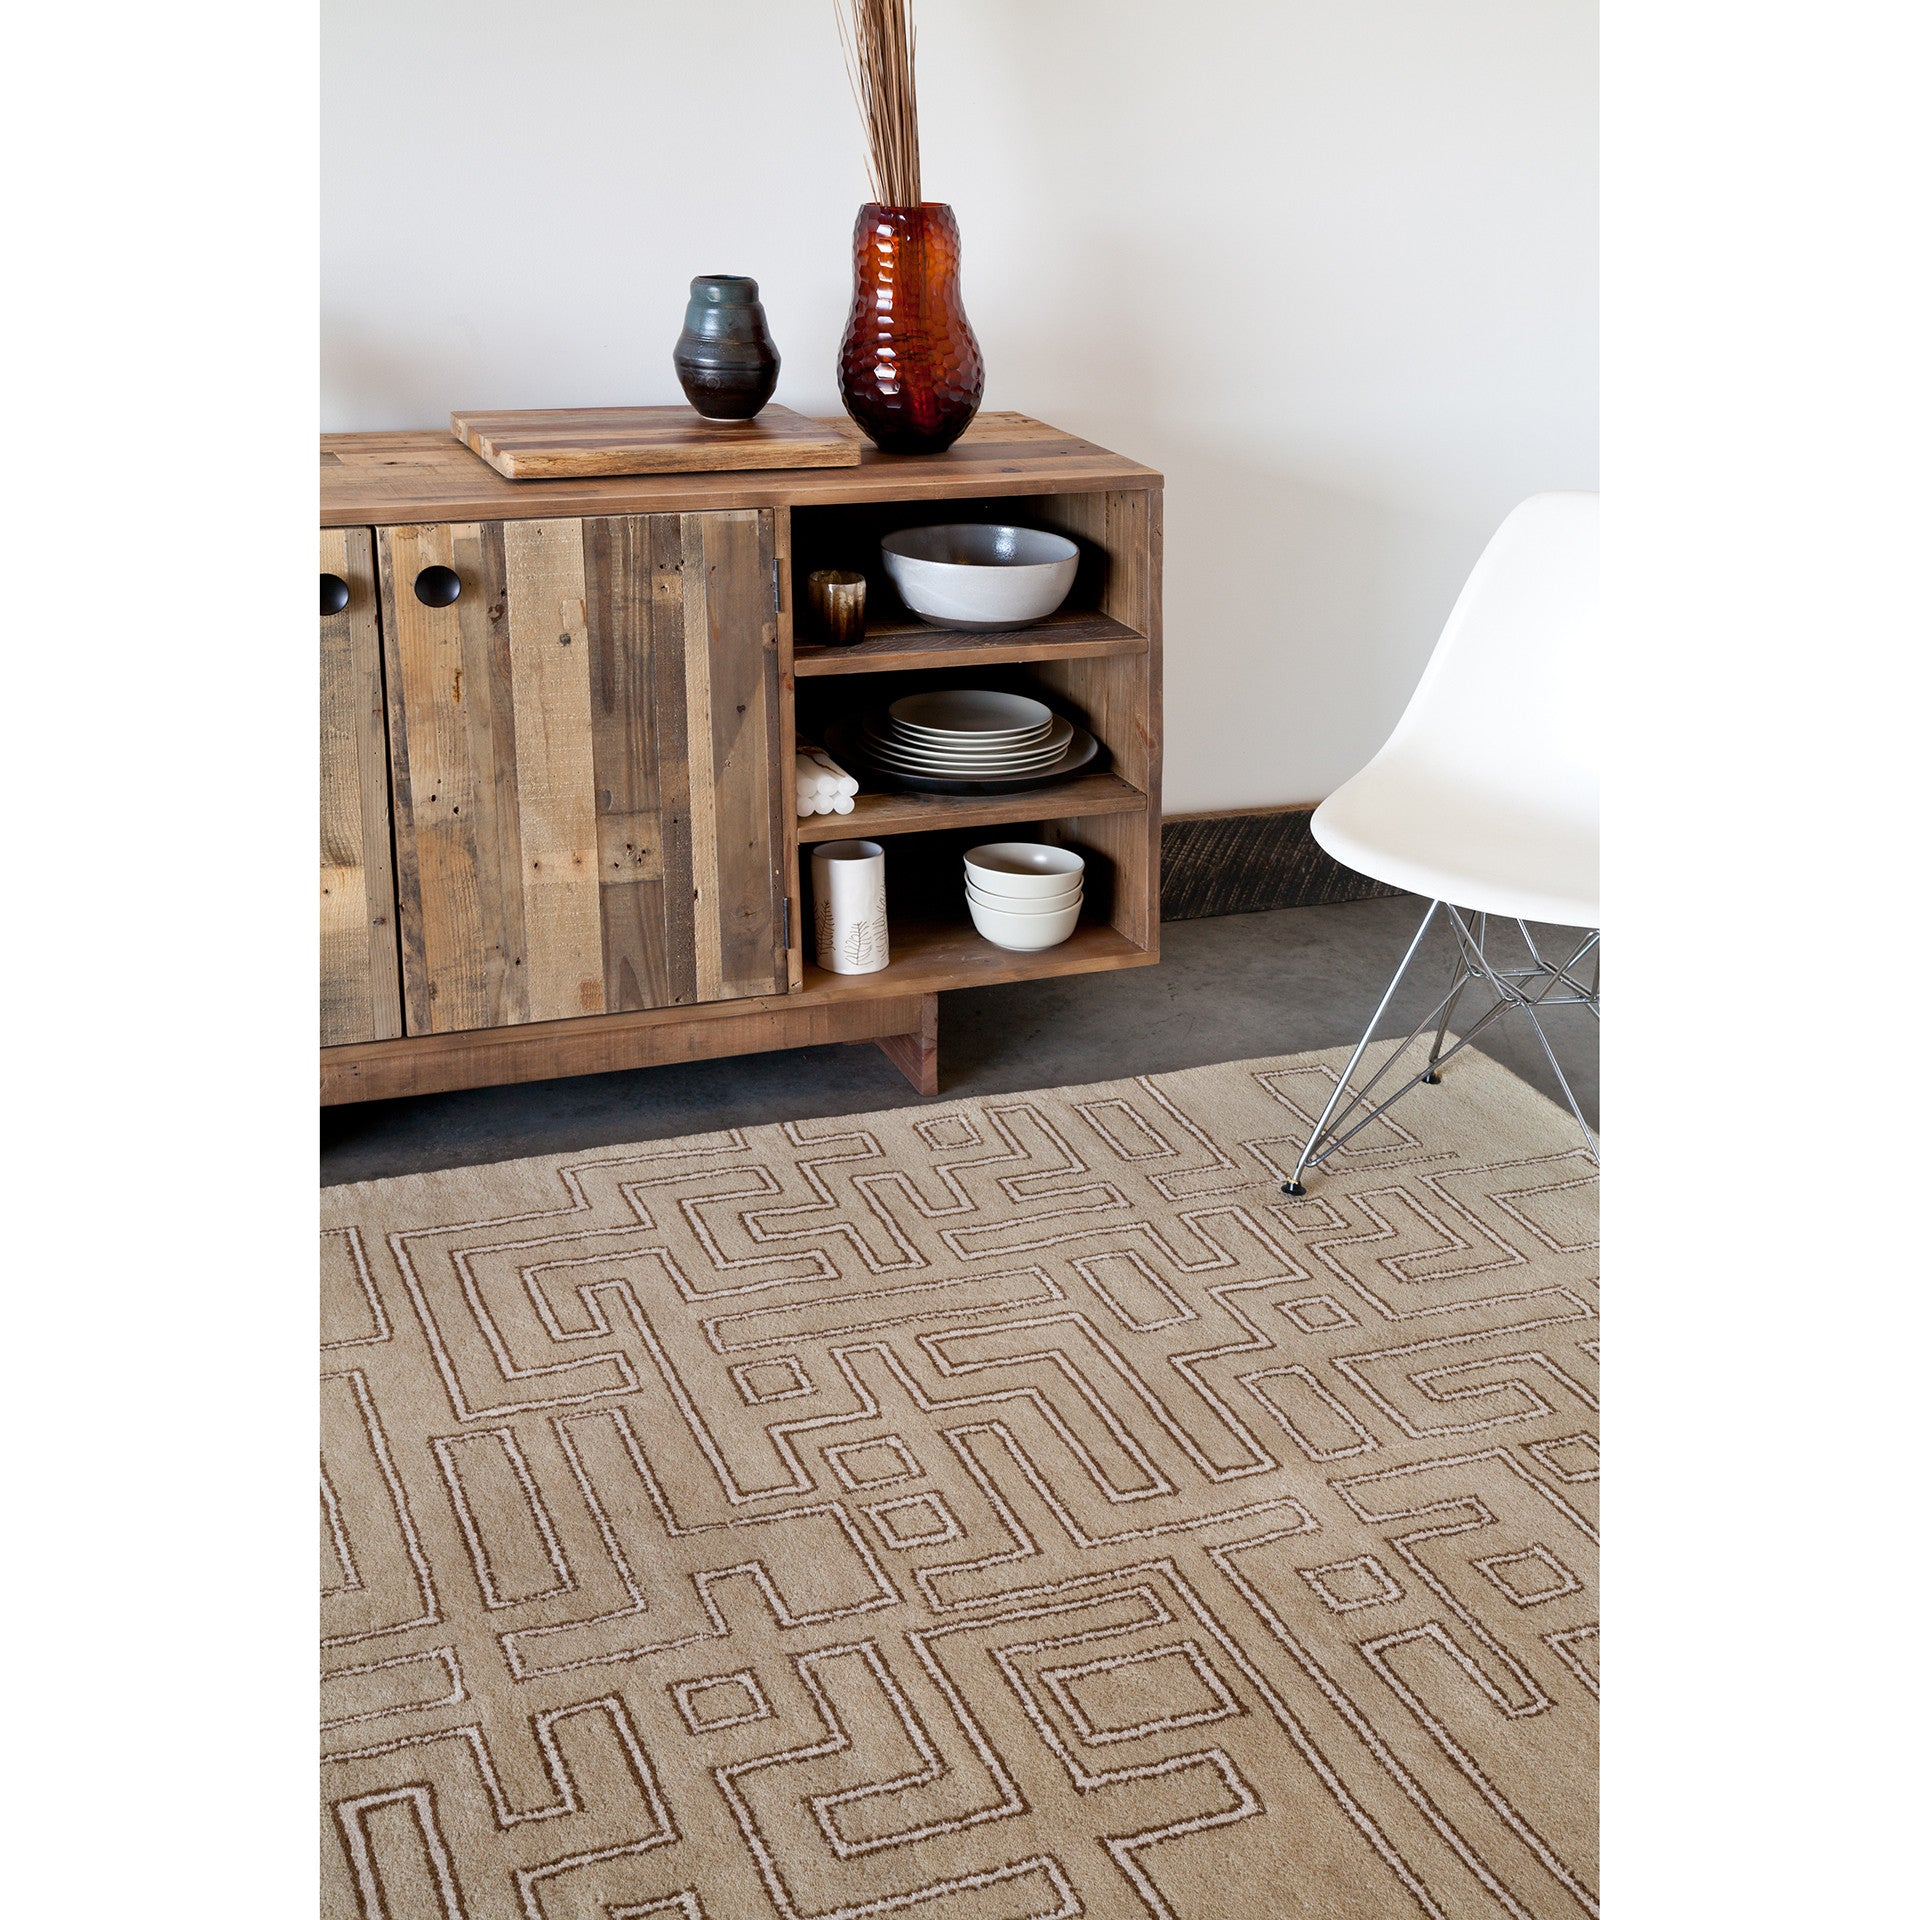 Stella Collection Hand Tufted Area Rug In Beige Light: Stella Collection Hand-Tufted Area Rug In Tan, Brown